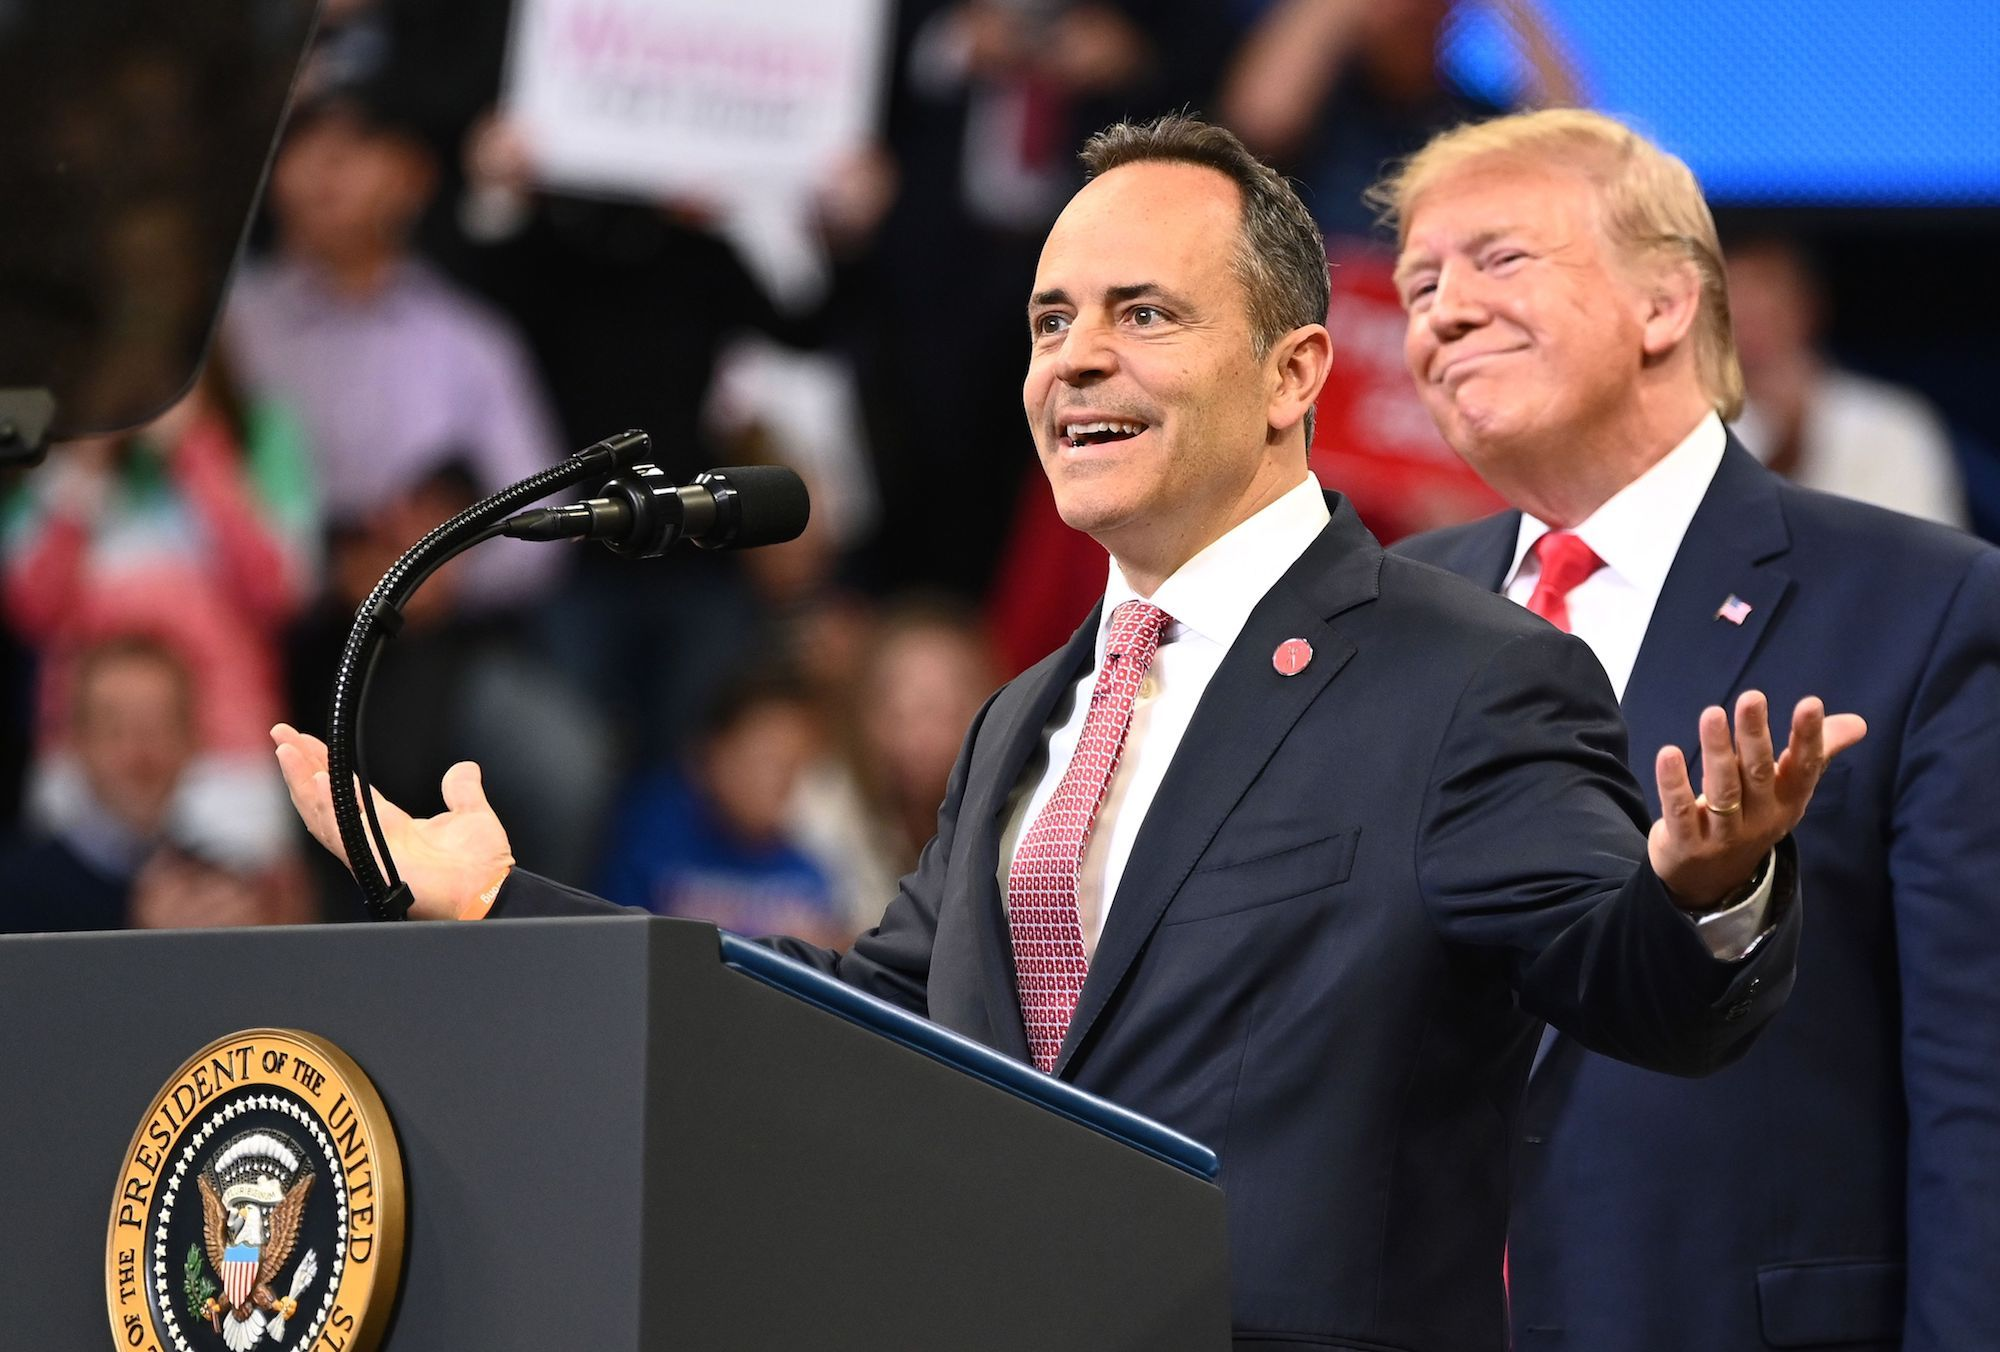 If Matt Bevin Had Not Lost the Election, He Would Have Won It